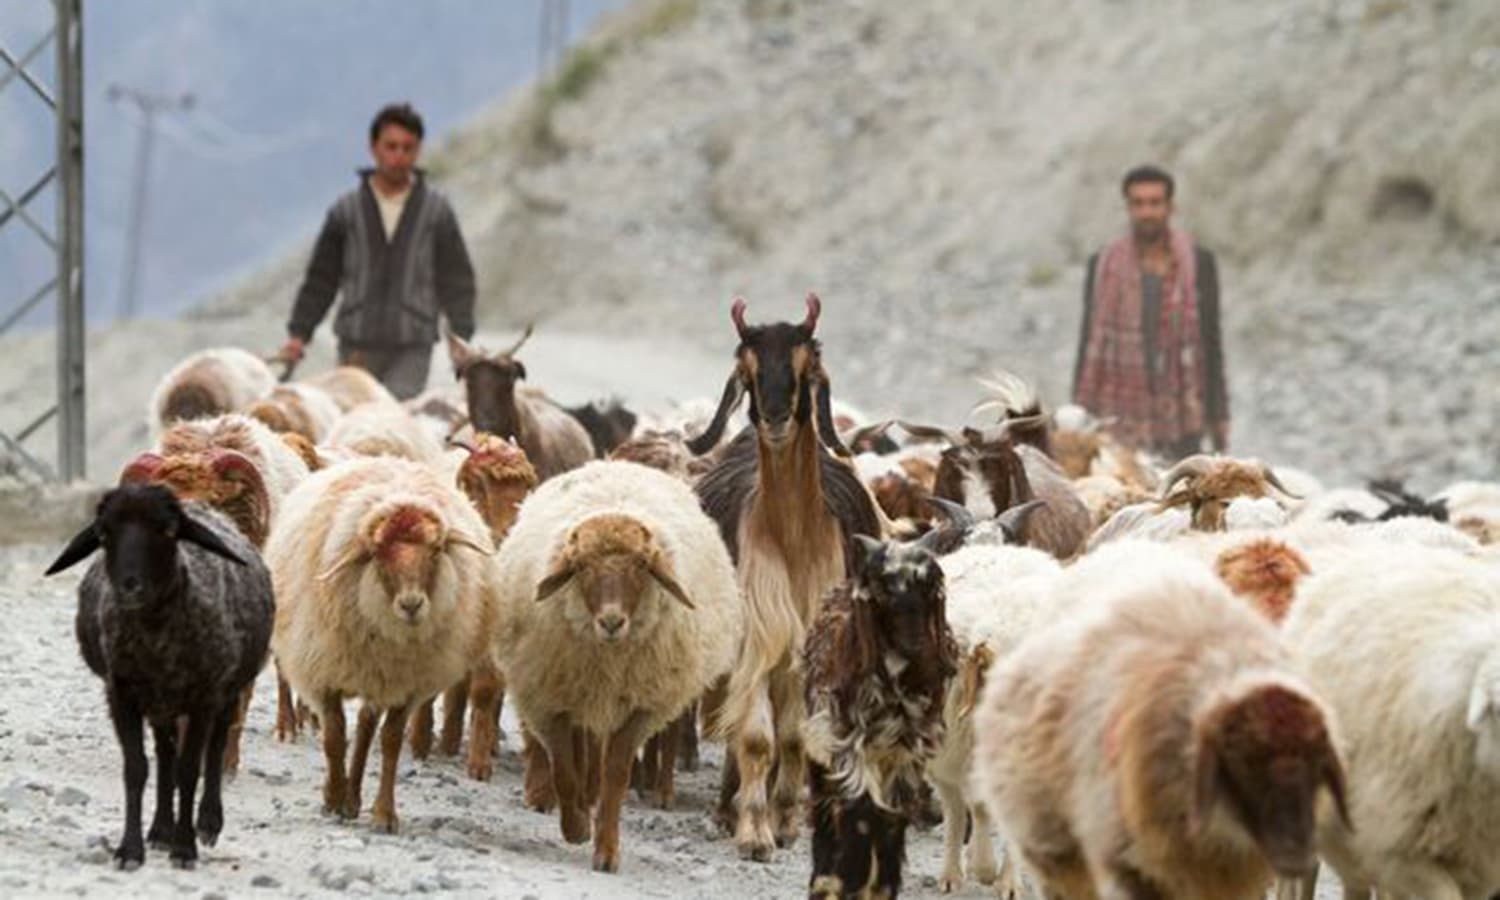 A local shepherd tending to his yaks near Khaplu. —Photo by Ghulam Rasool